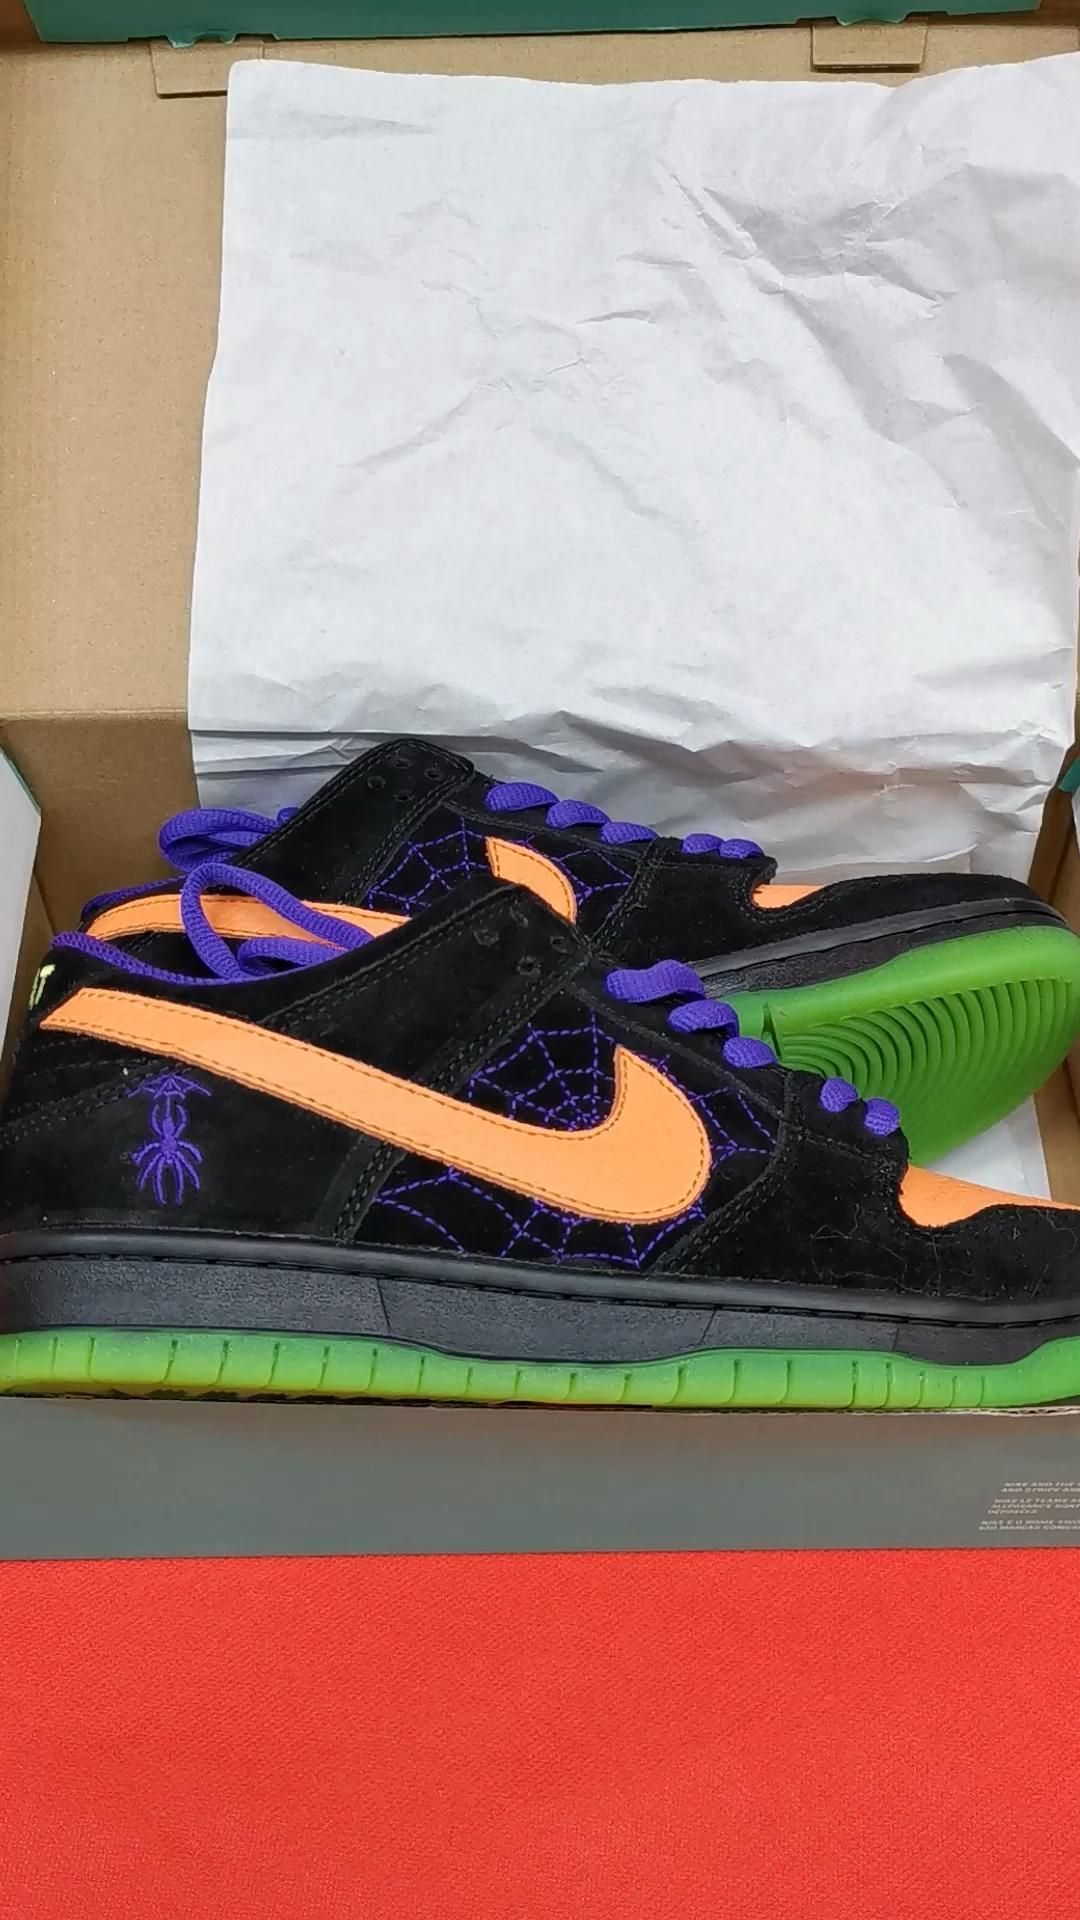 The Best Original Dunk Low Sb Night Of Mischief At Online Shop Video Video In 2020 Nike Nike Shoes Nike Air Max